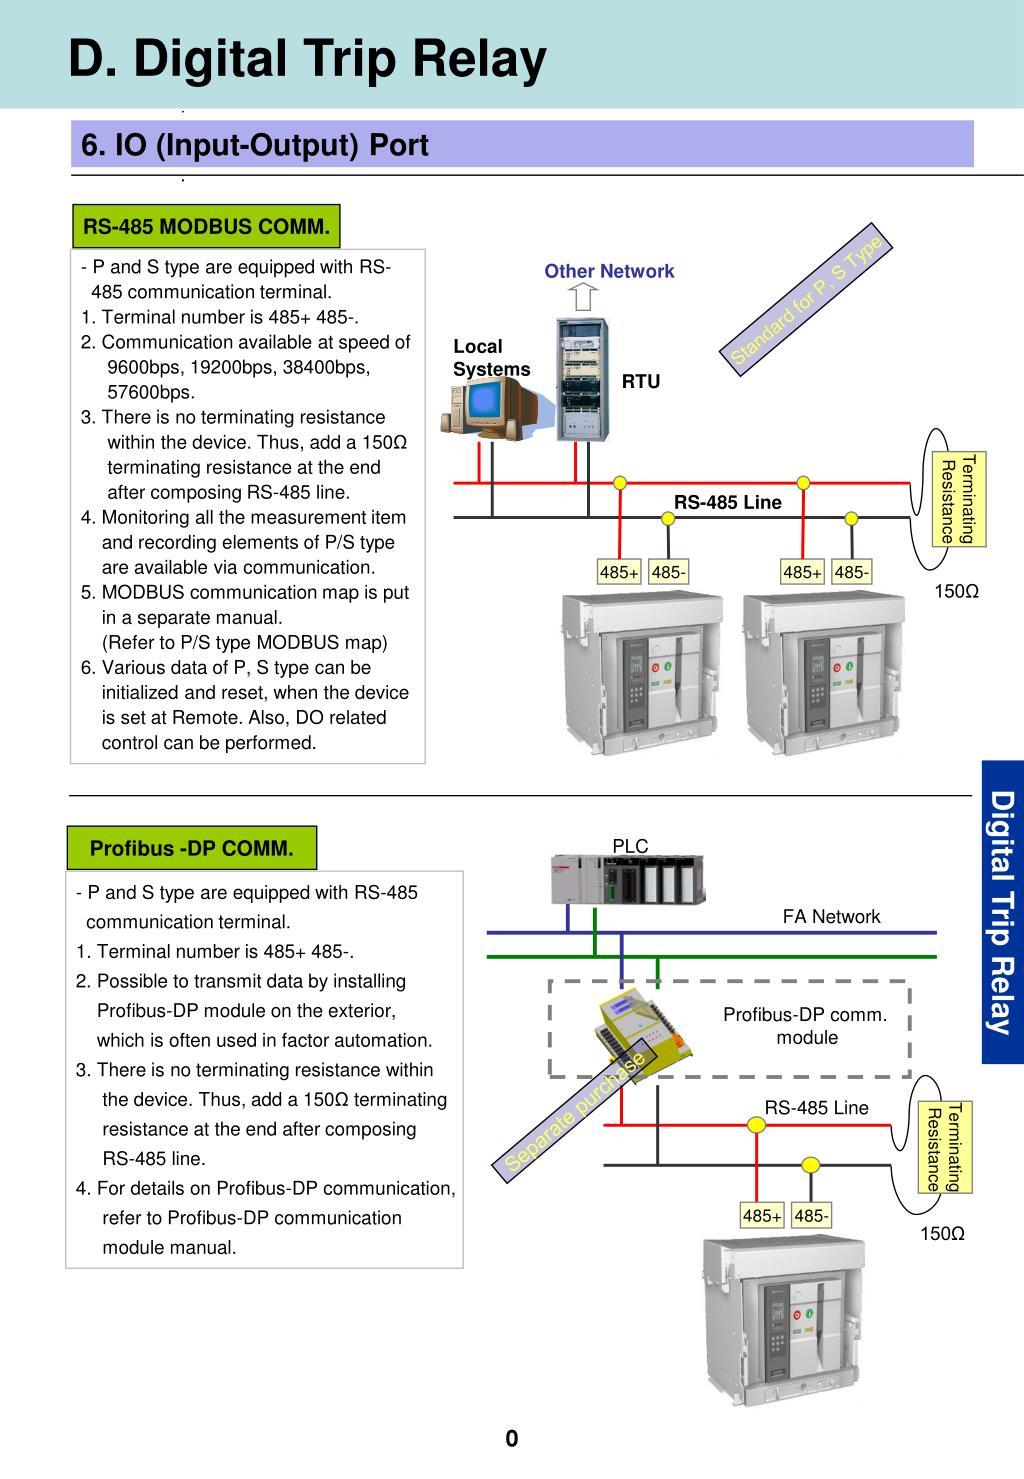 PPT - RS-485 MODBUS COMM  PowerPoint Presentation - ID:2723490